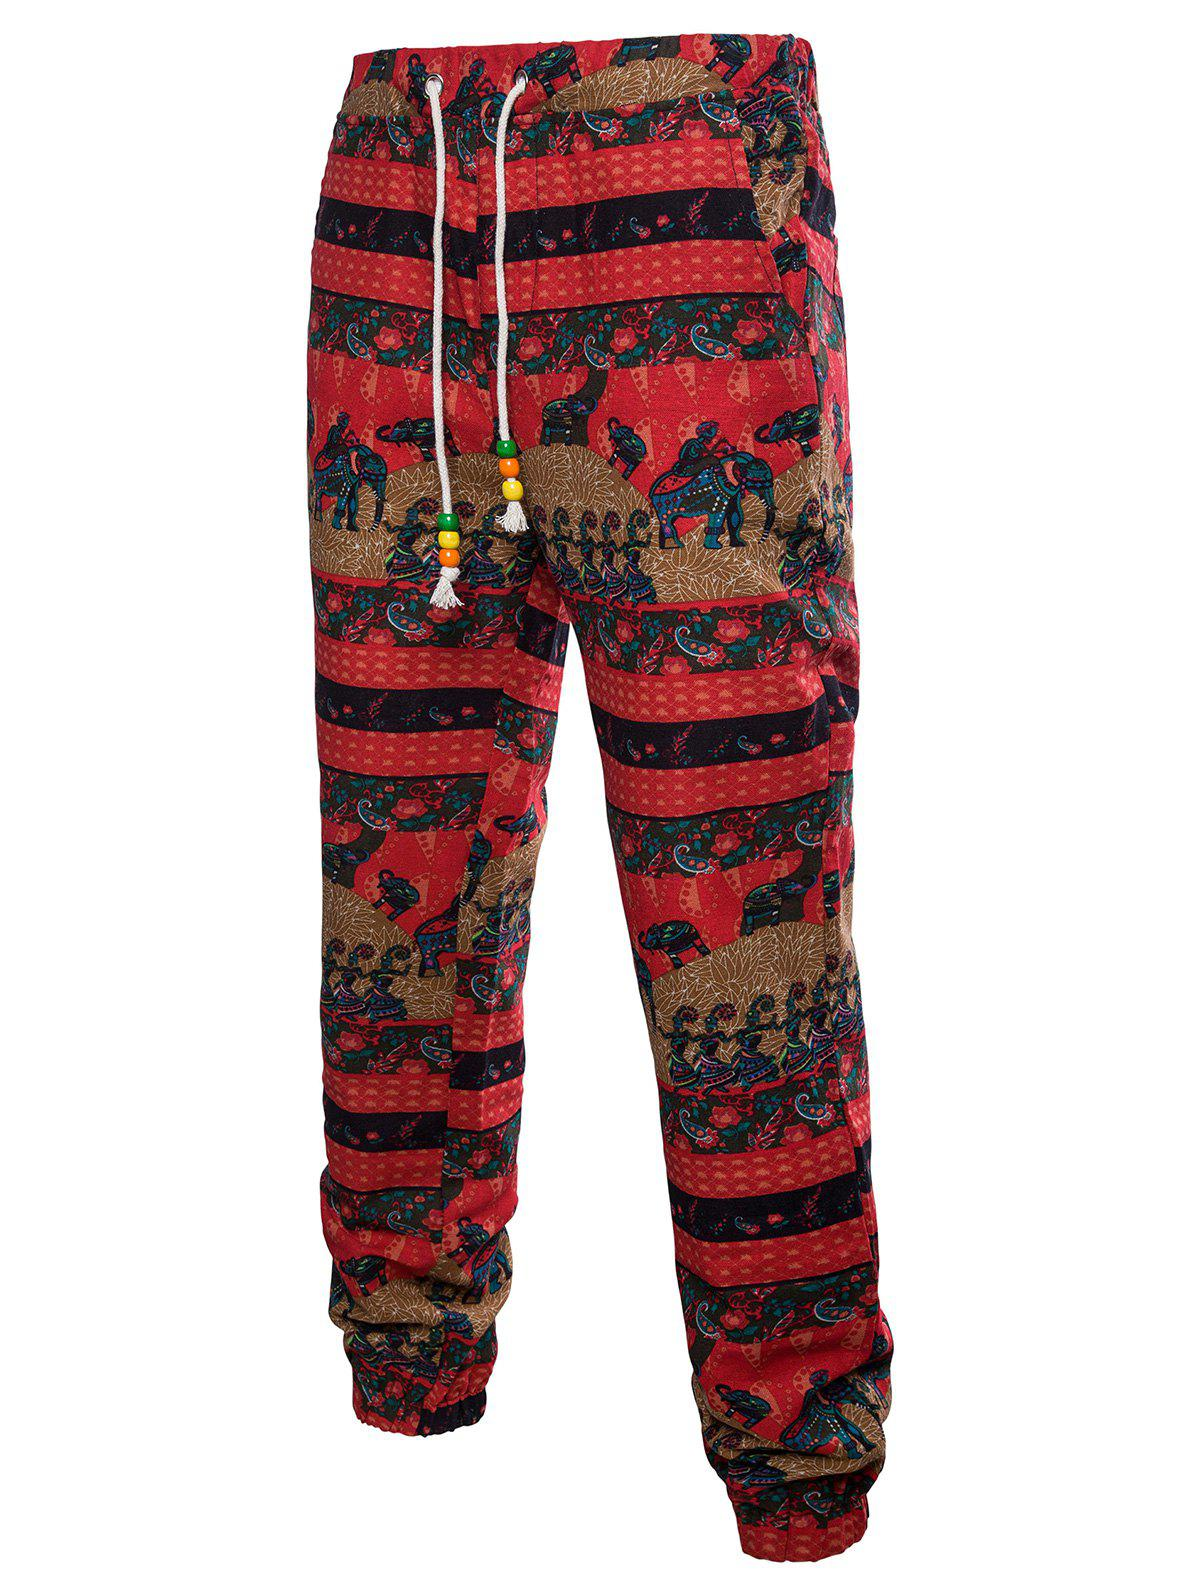 Sport Drawstring Ethnic Elephant Striped Print Sweatpants - multicolor L